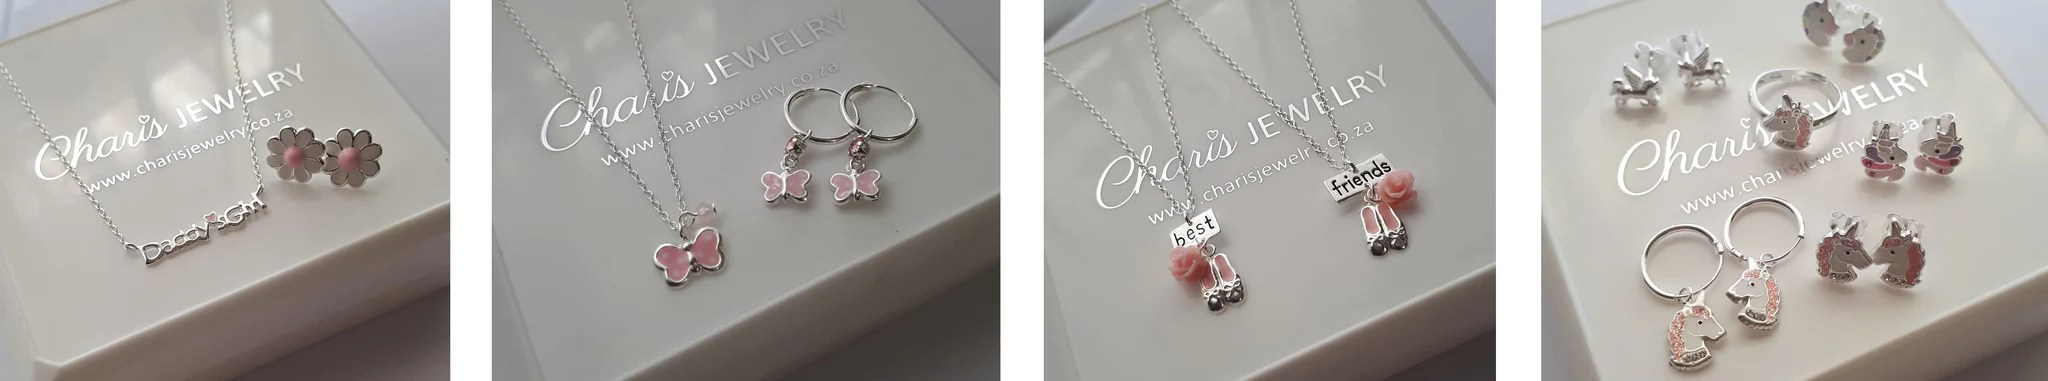 Baby And Children Personalized Gift Jewelry Online South